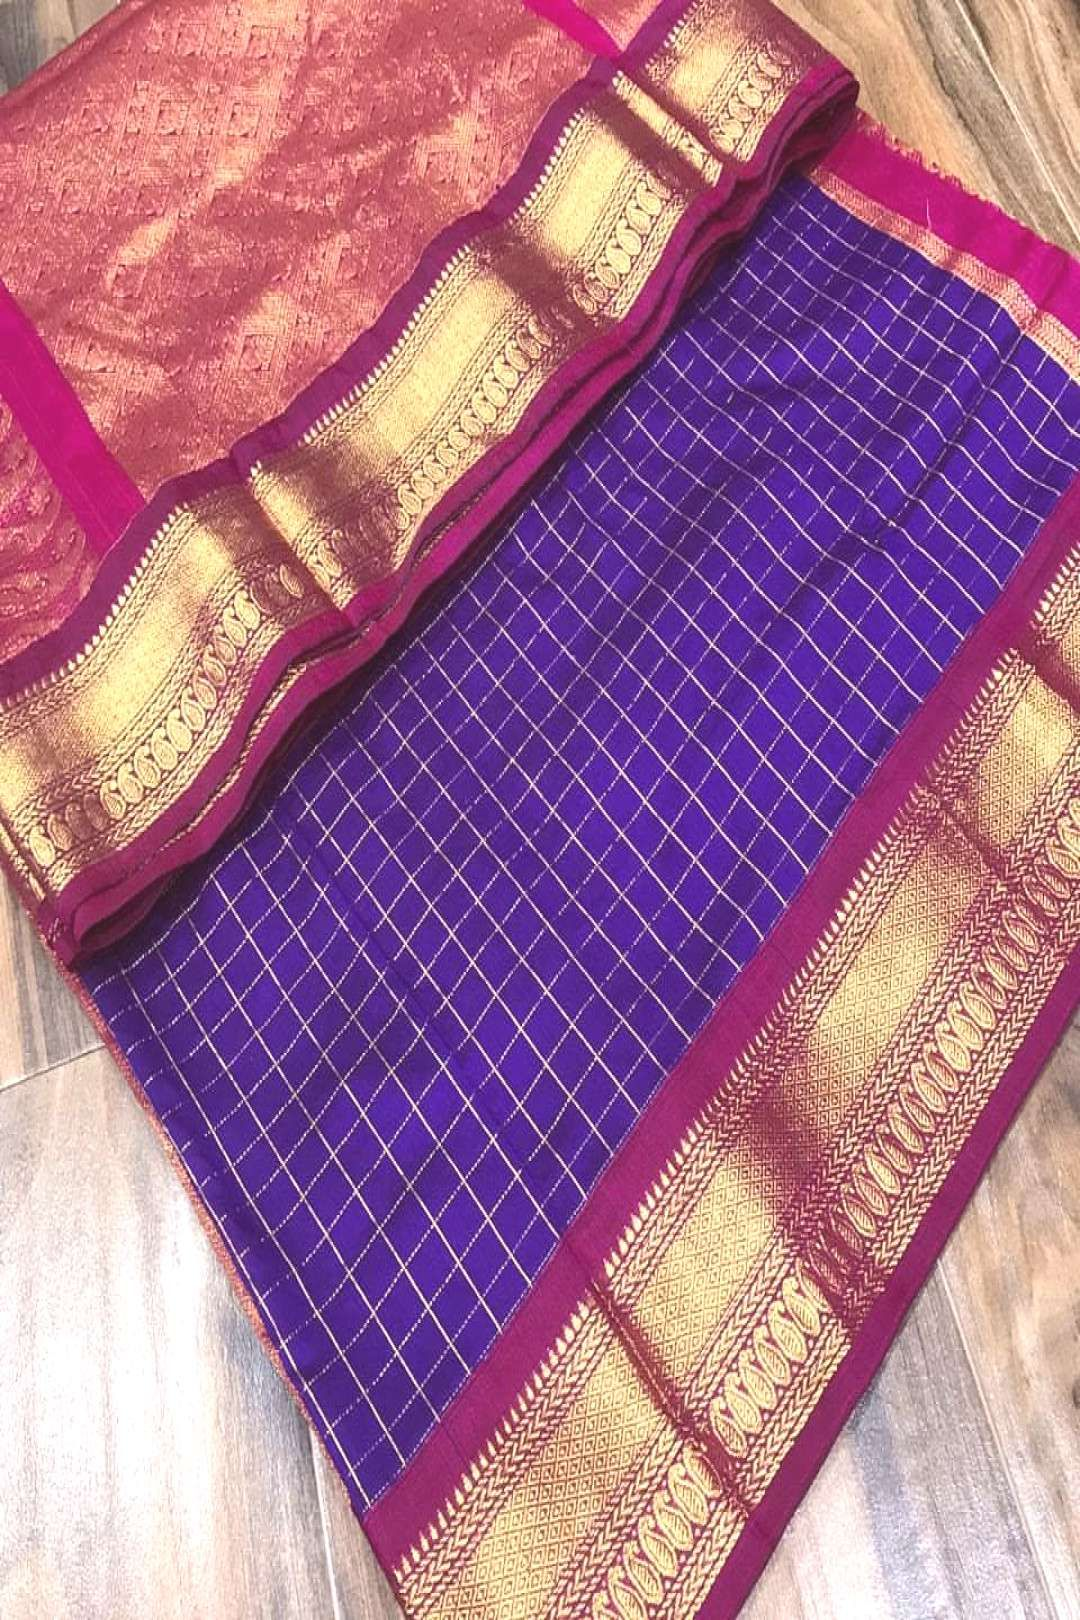 #chithinadu #february #fashions #special #222020 #cotton #vihaas #photo #saree #look #like #1499 #silk #its #new Rs. 1499 New Chithinadu special silk cotton saree it's look like You can find Office wea...